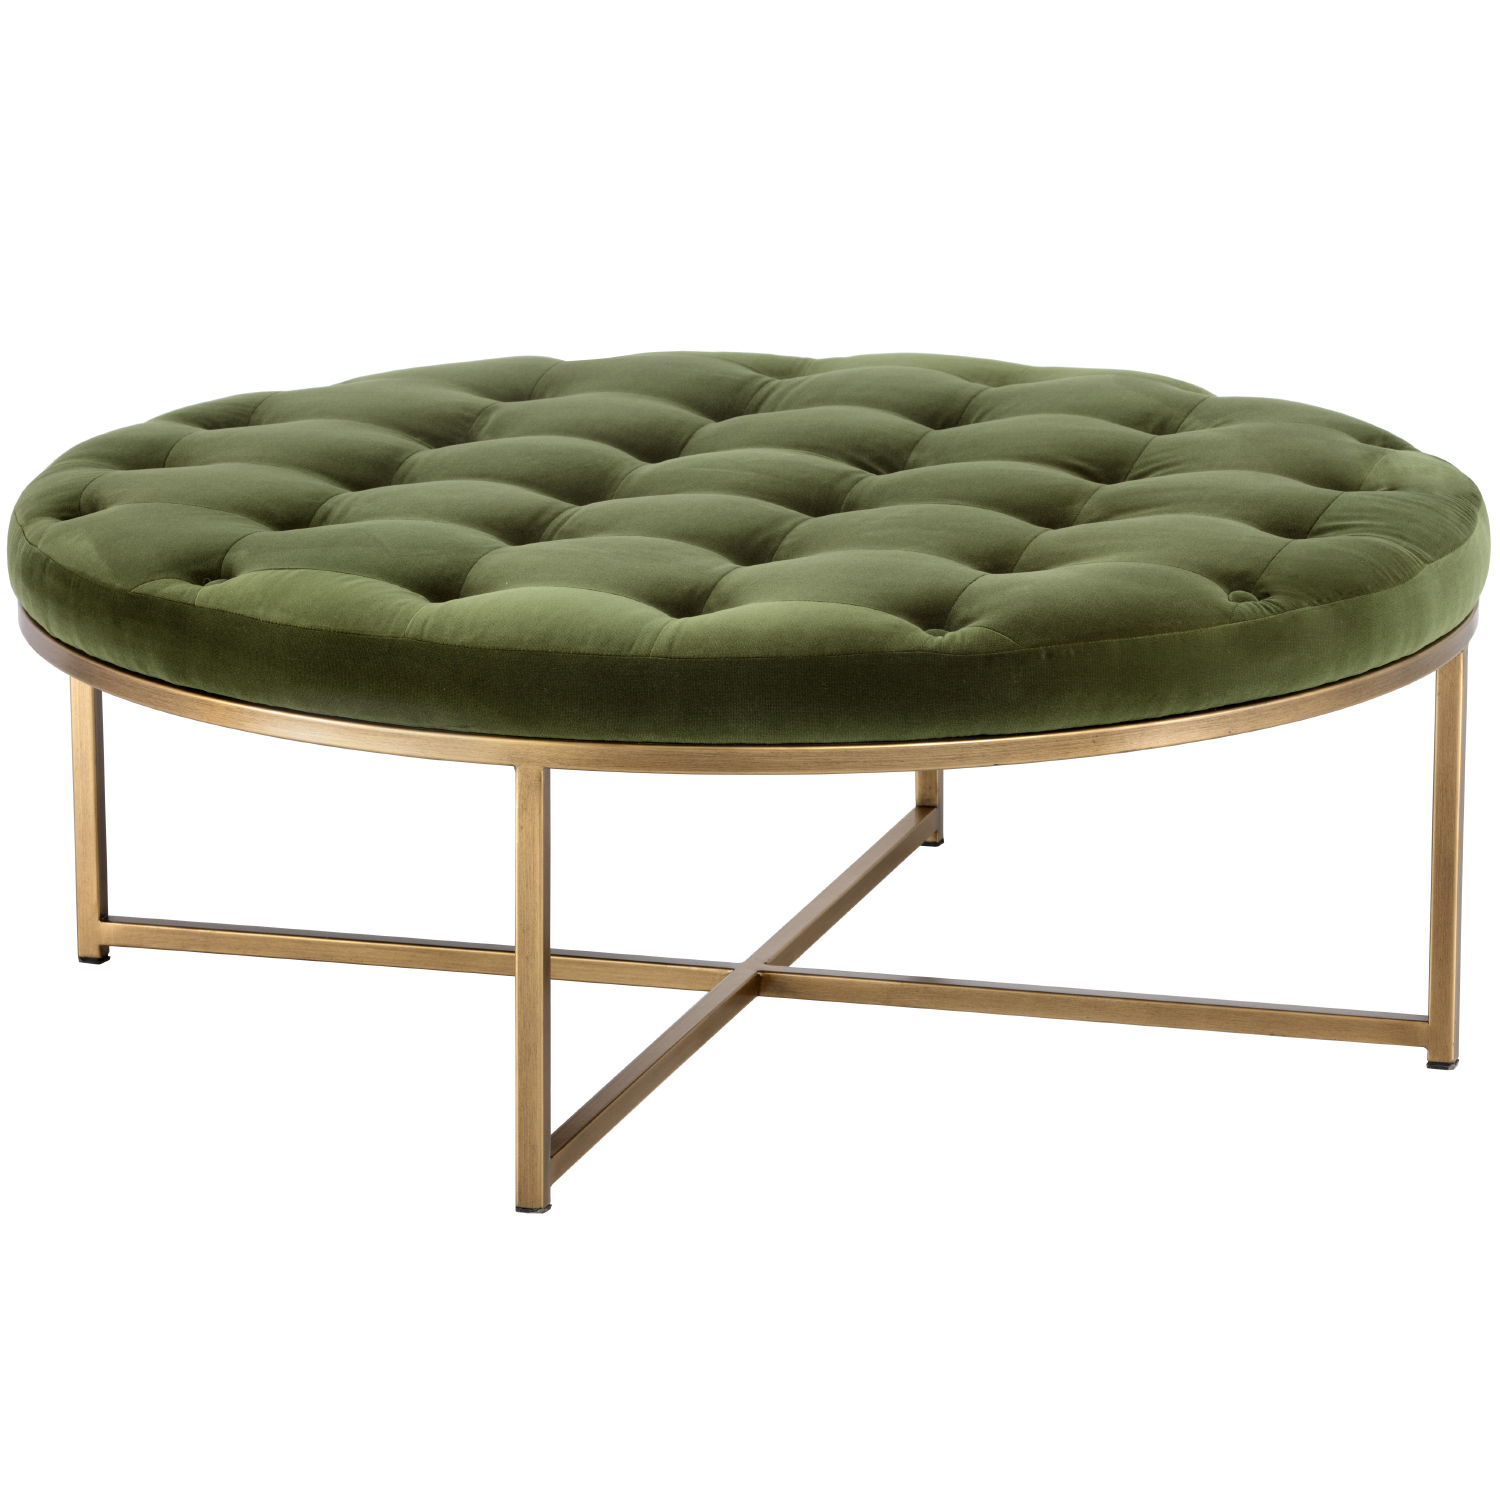 Endall Round Coffee Table Ottoman In Forest Green Velvet Brass By Sunpan